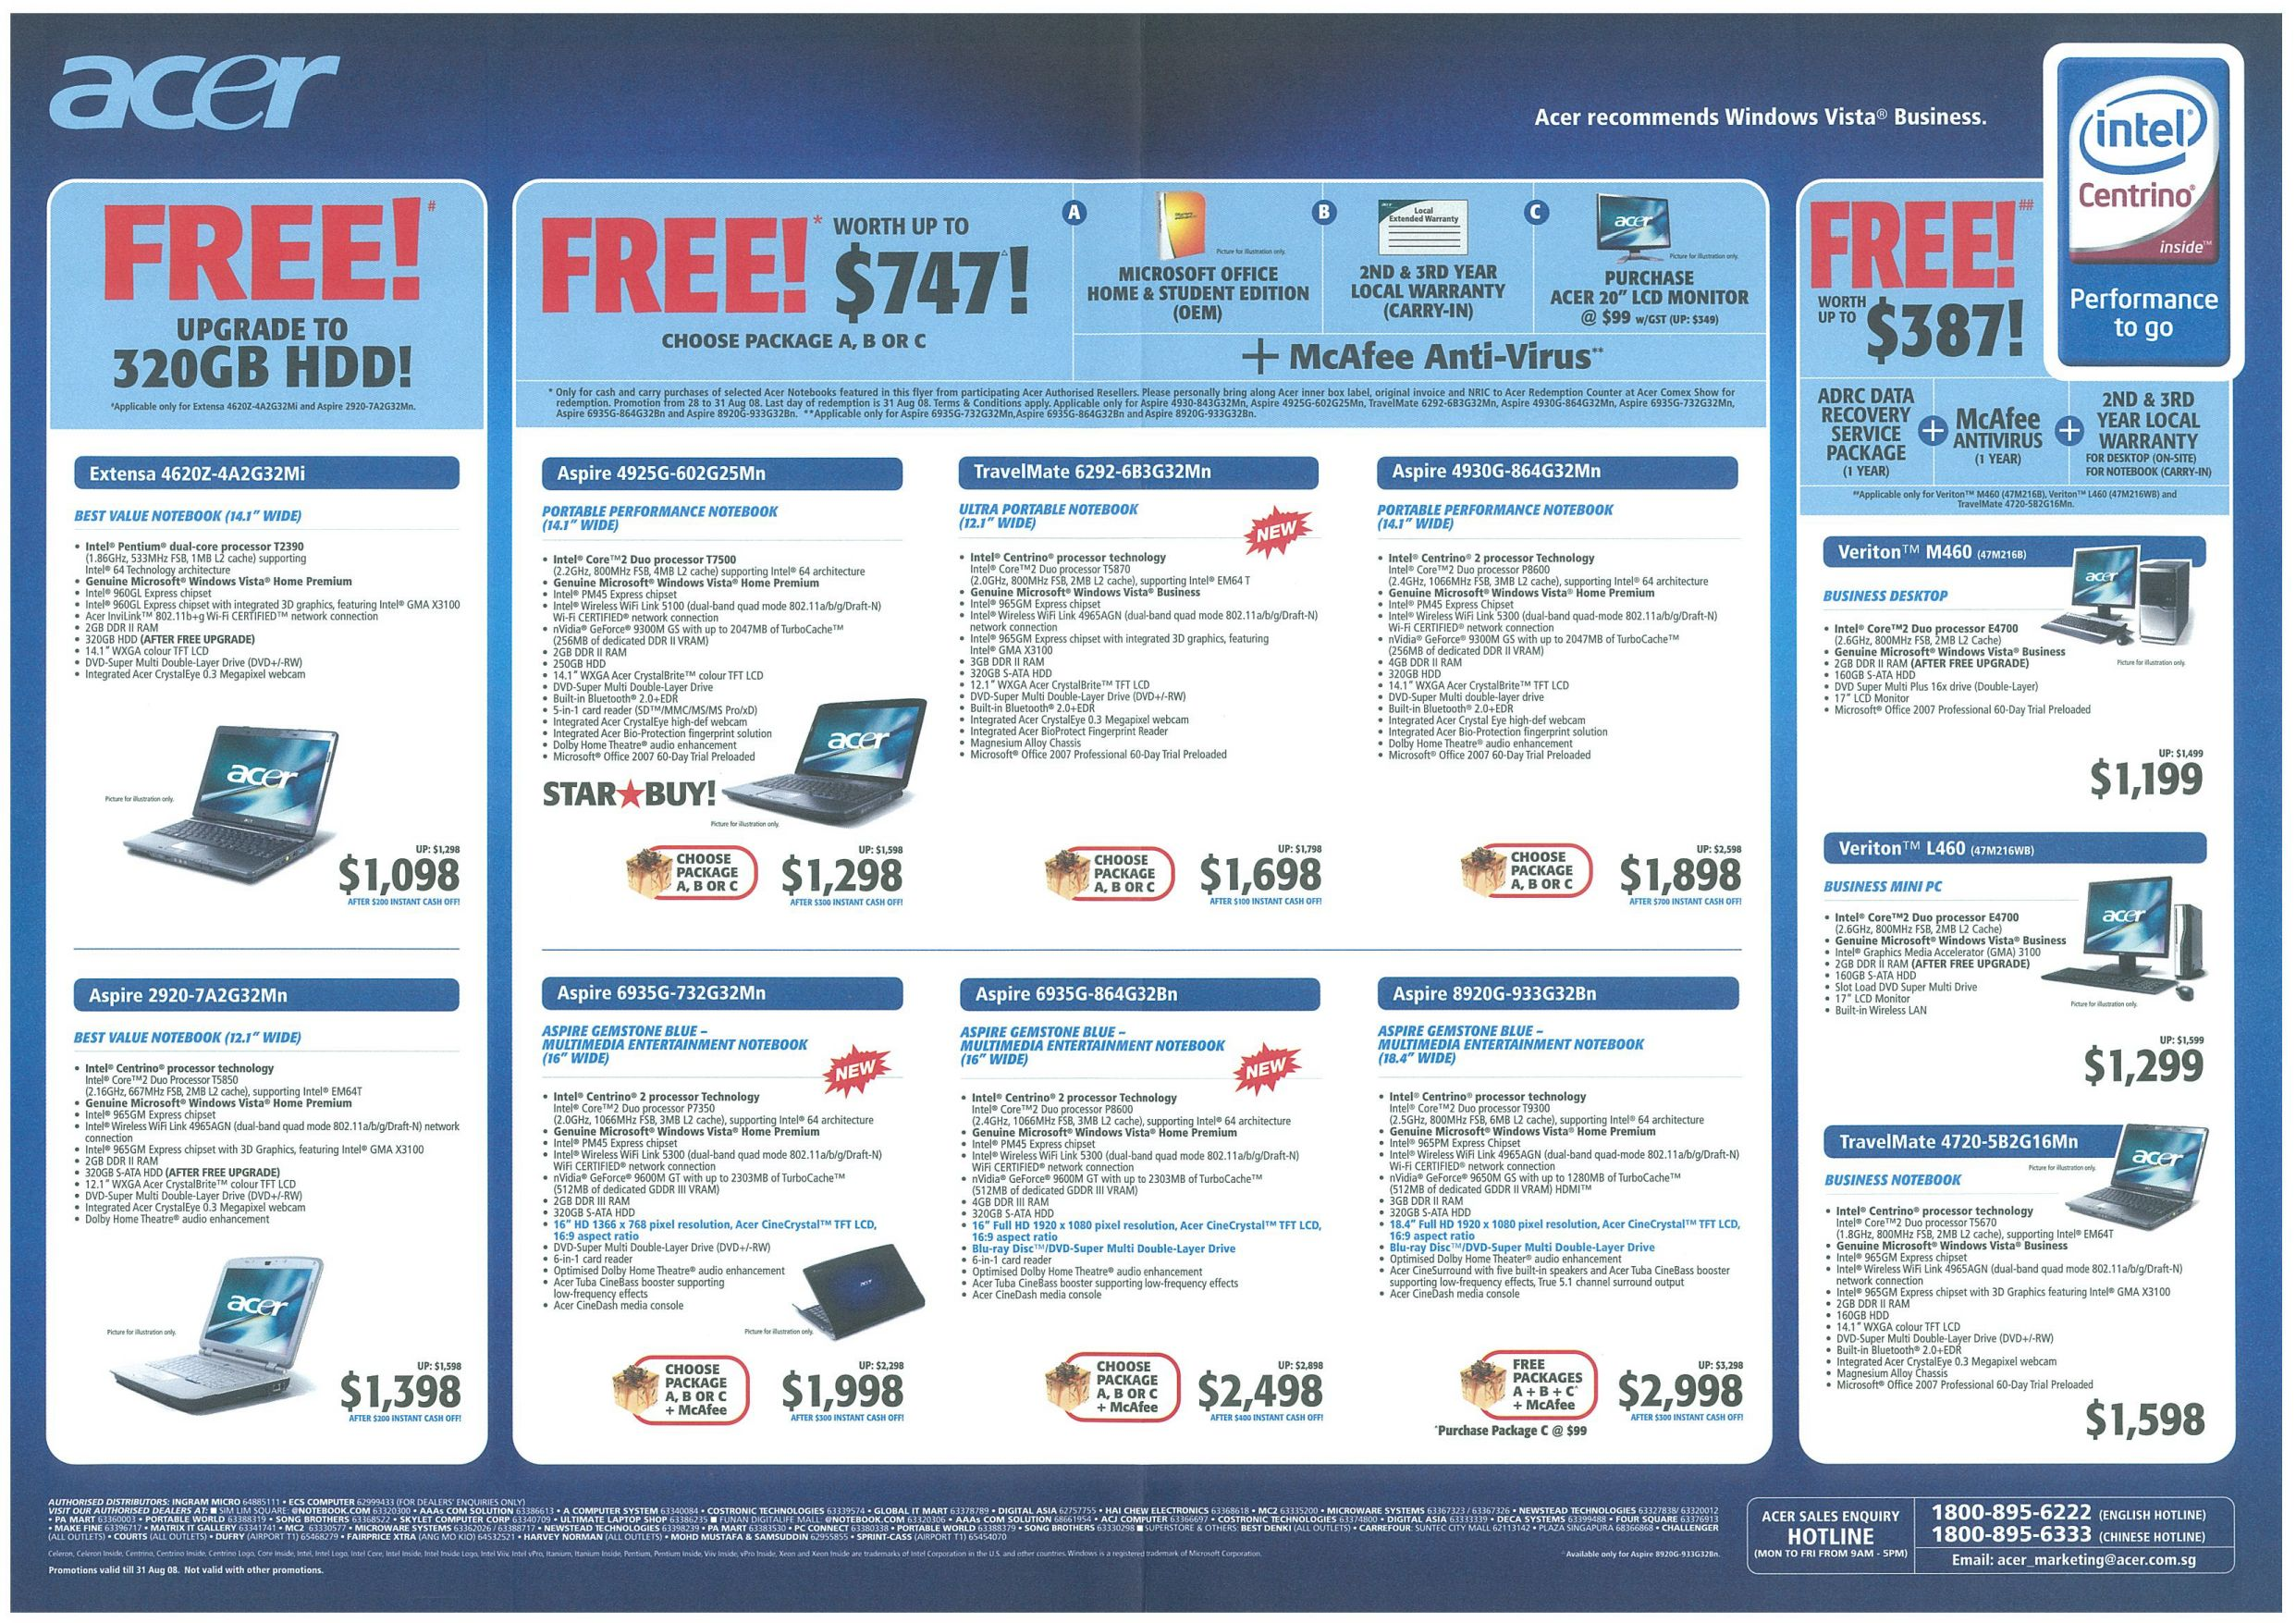 Comex 2008 price list image brochure of Acer Notebooks.pdf 02